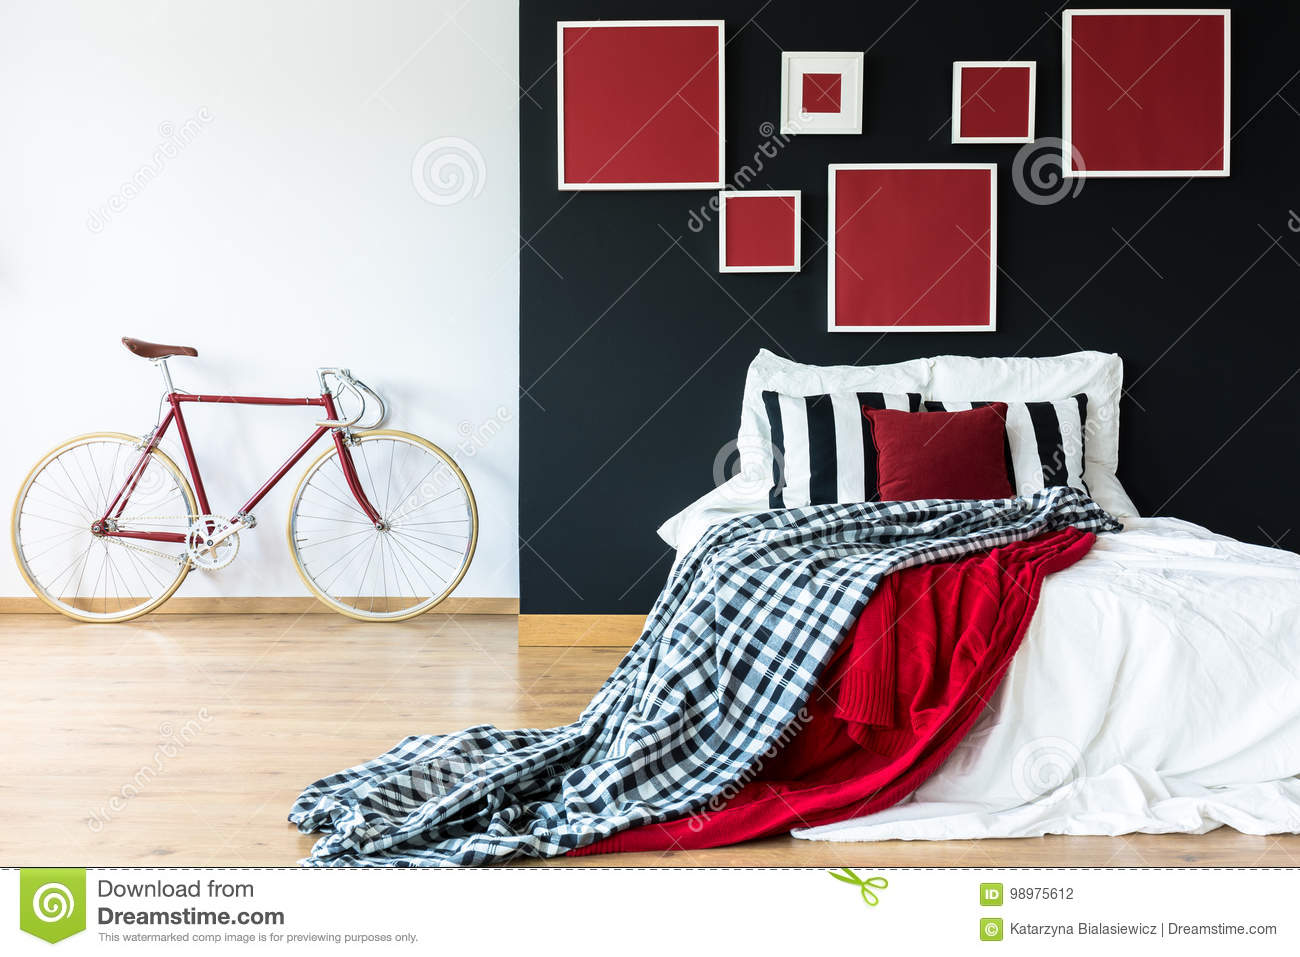 Vélo Rouge Contre Le Mur Blanc Photo stock - Image du ...